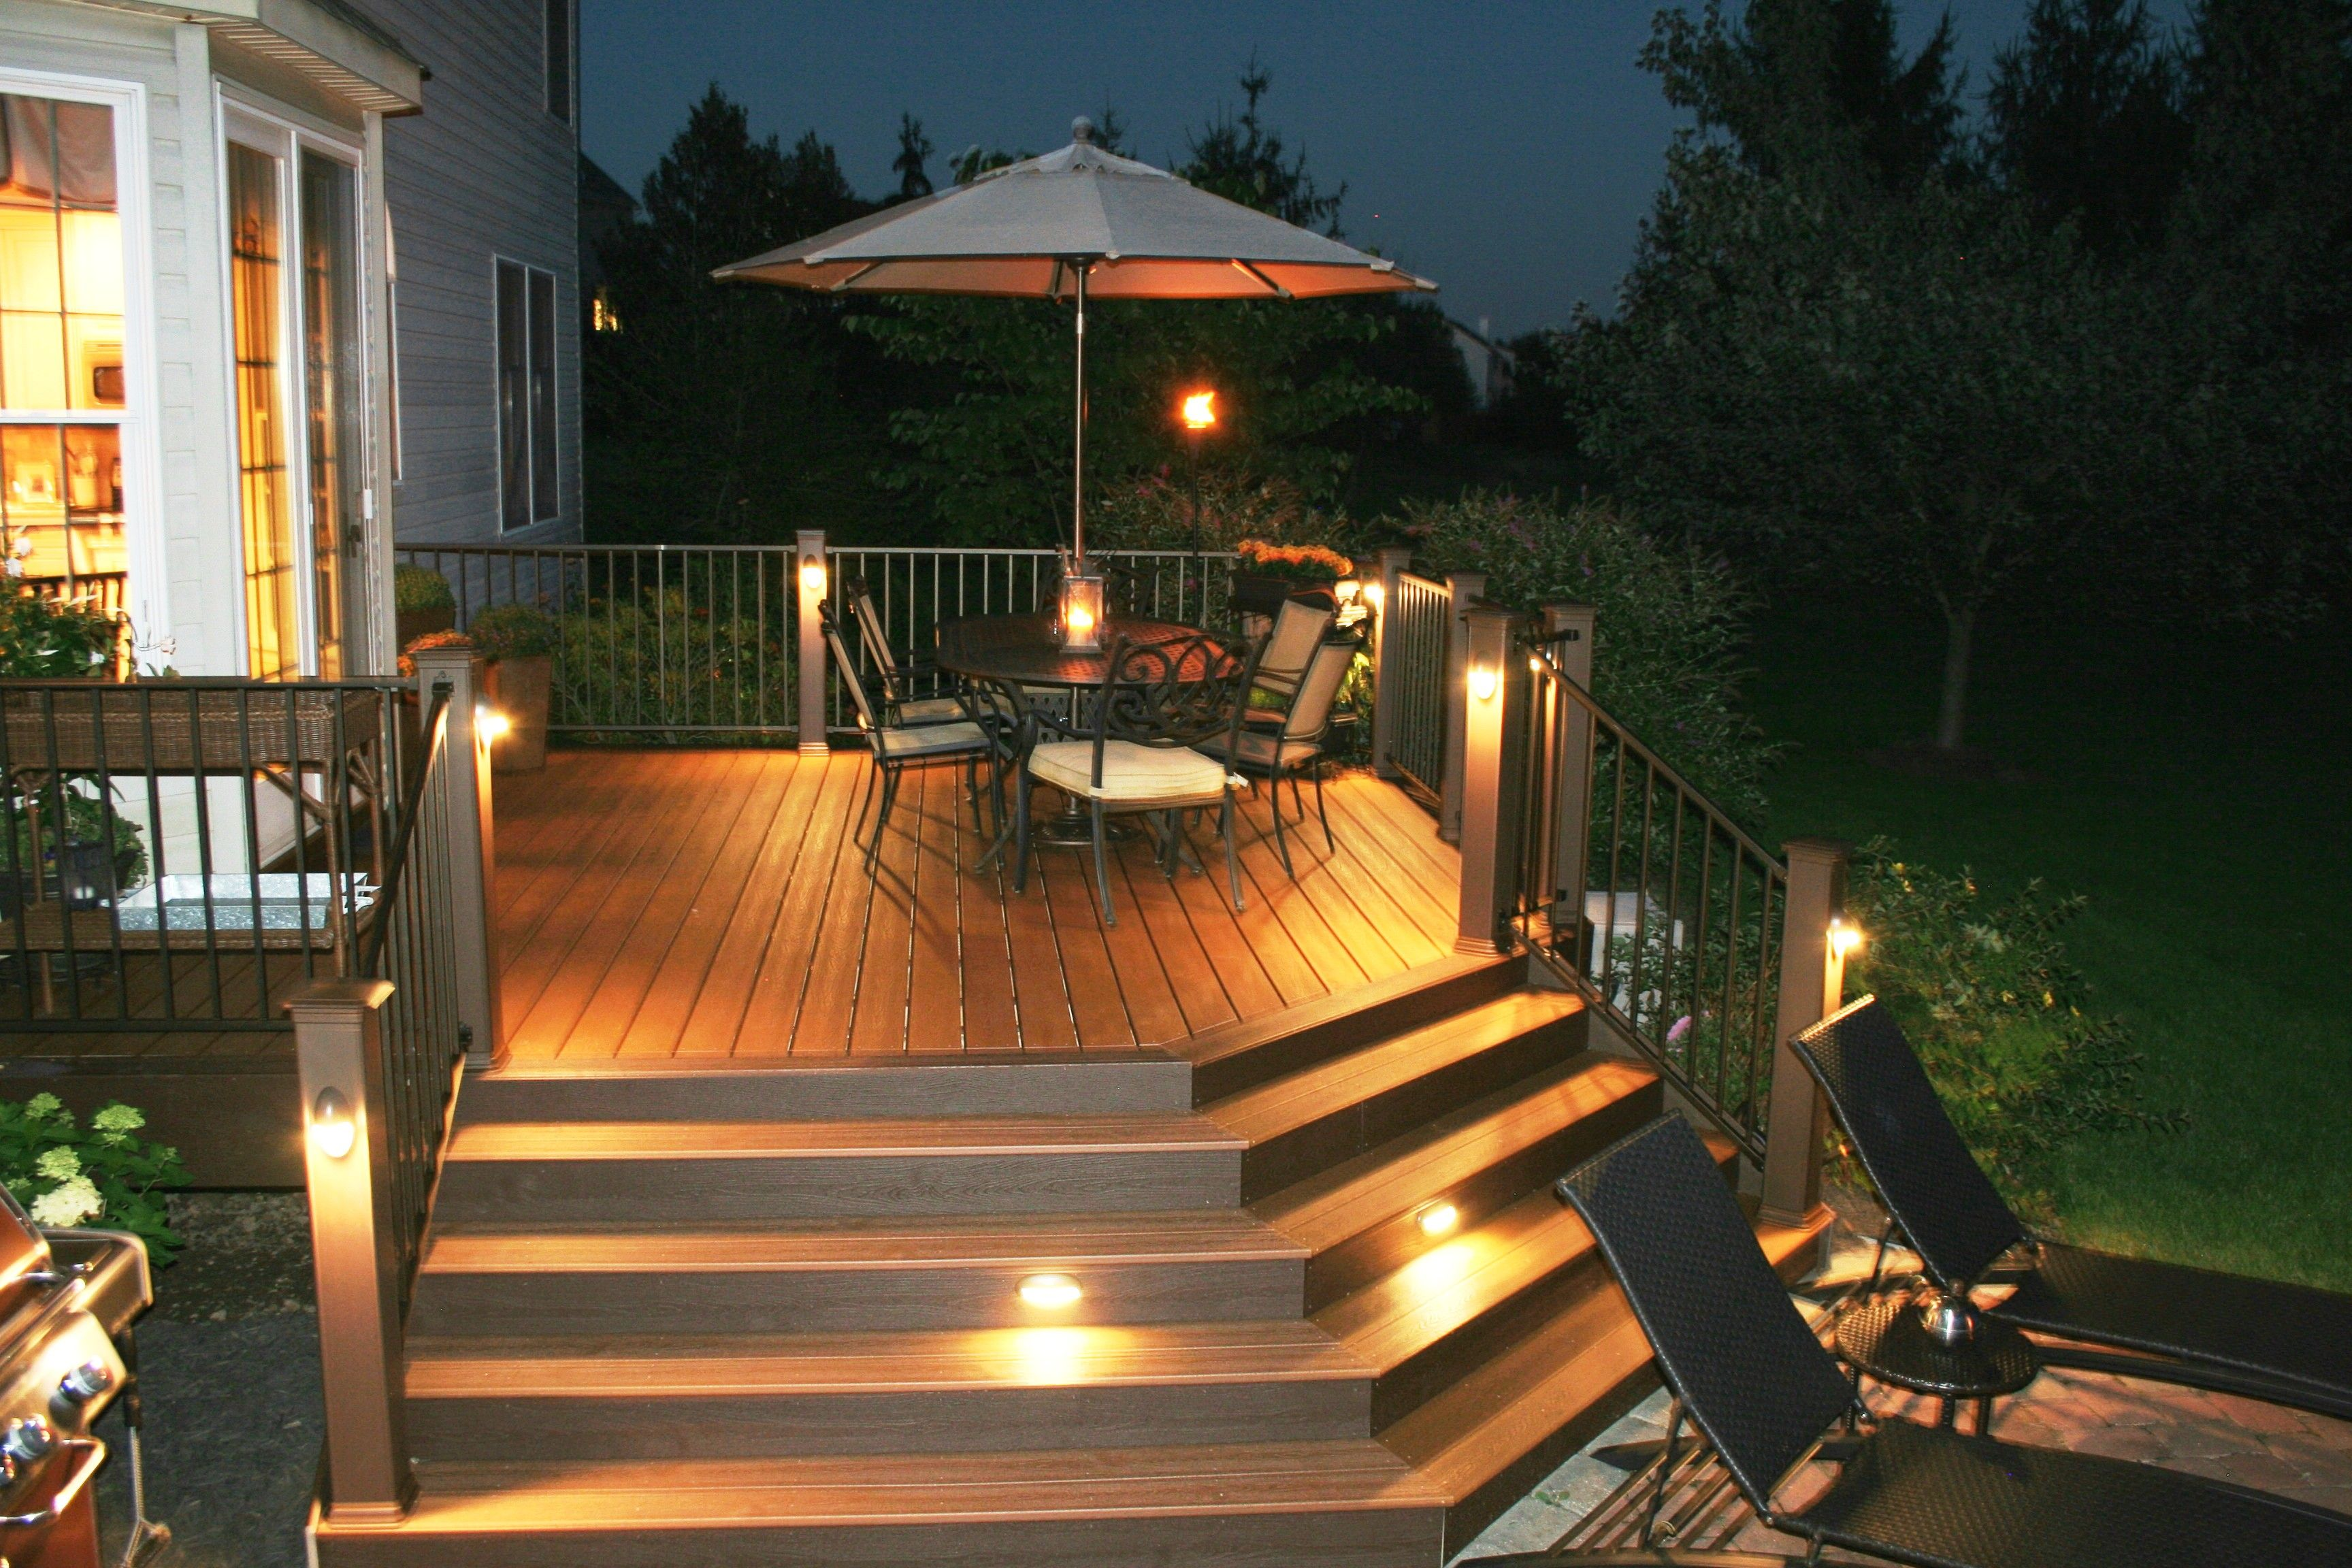 deck lighting ideas pictures. Deck Lighting Ideas With Impressive Settings - Http://decks.fishytunes.net Pictures S